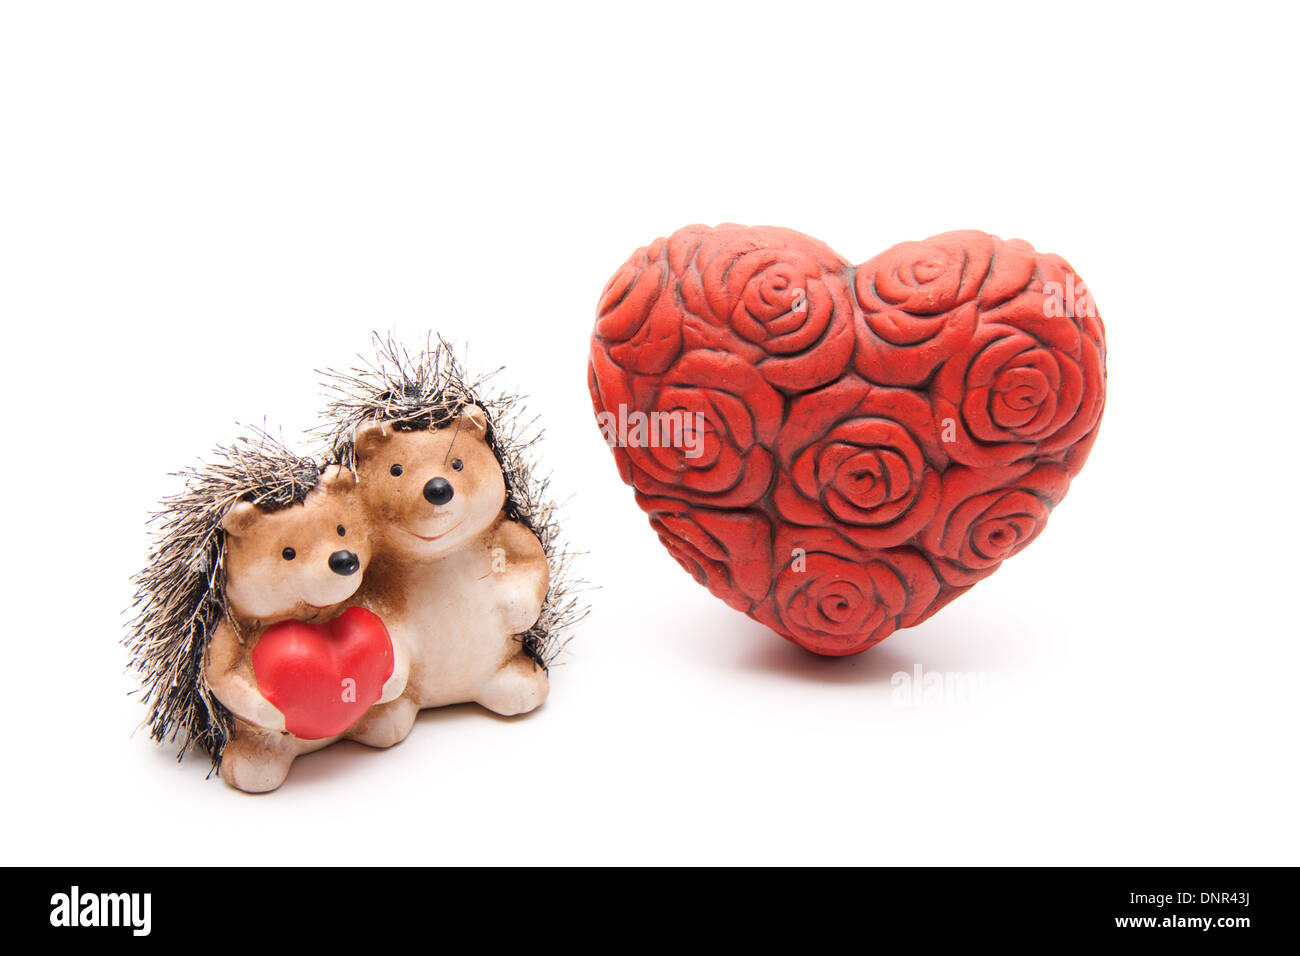 Red stone heart with hedgehog pair - Stock Image